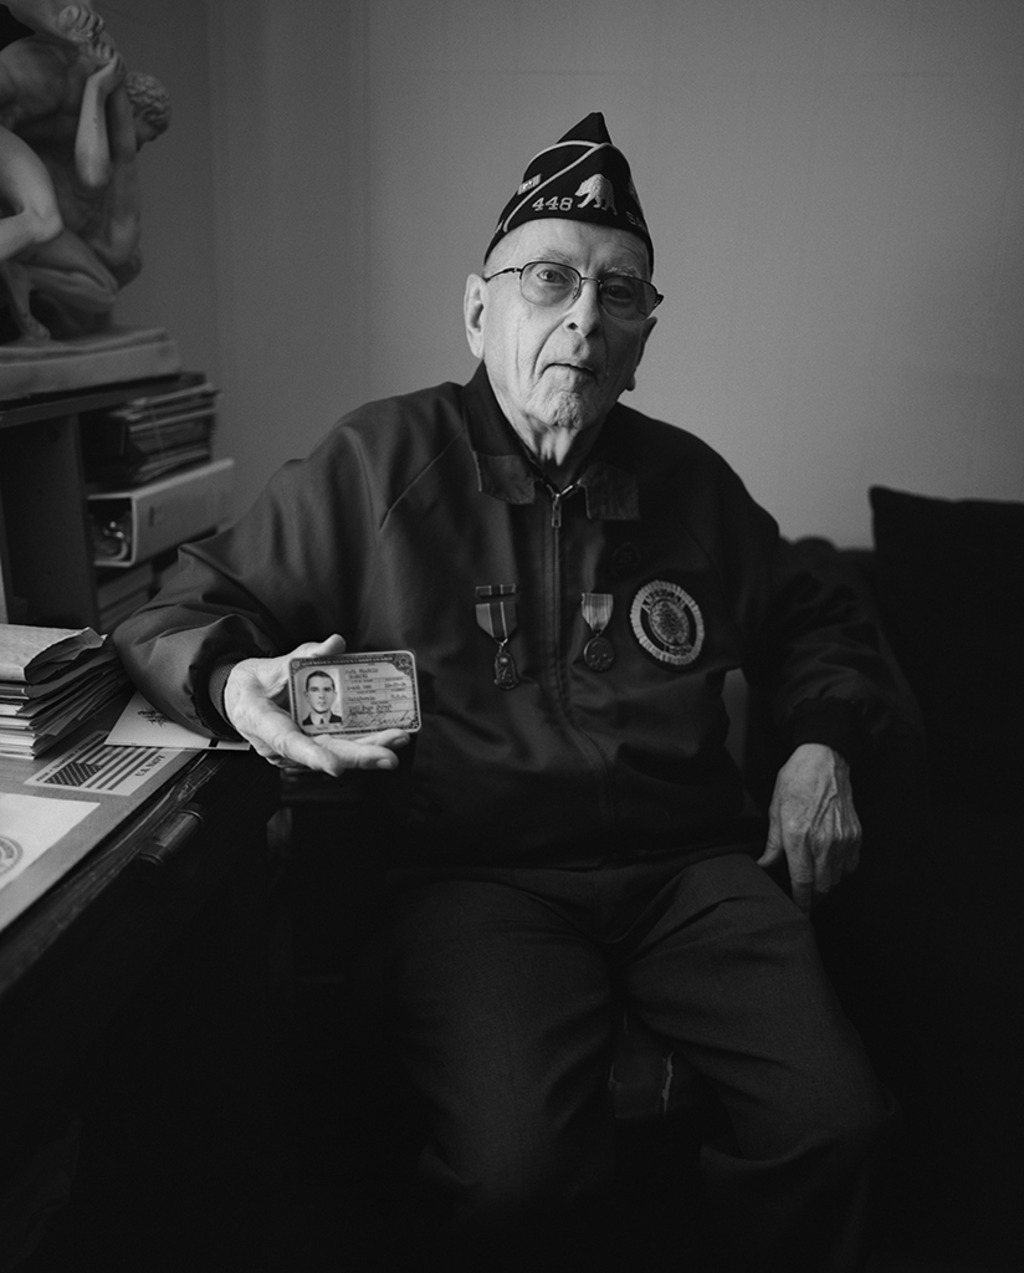 Paul Goercke, San Francisco, CA, 2012